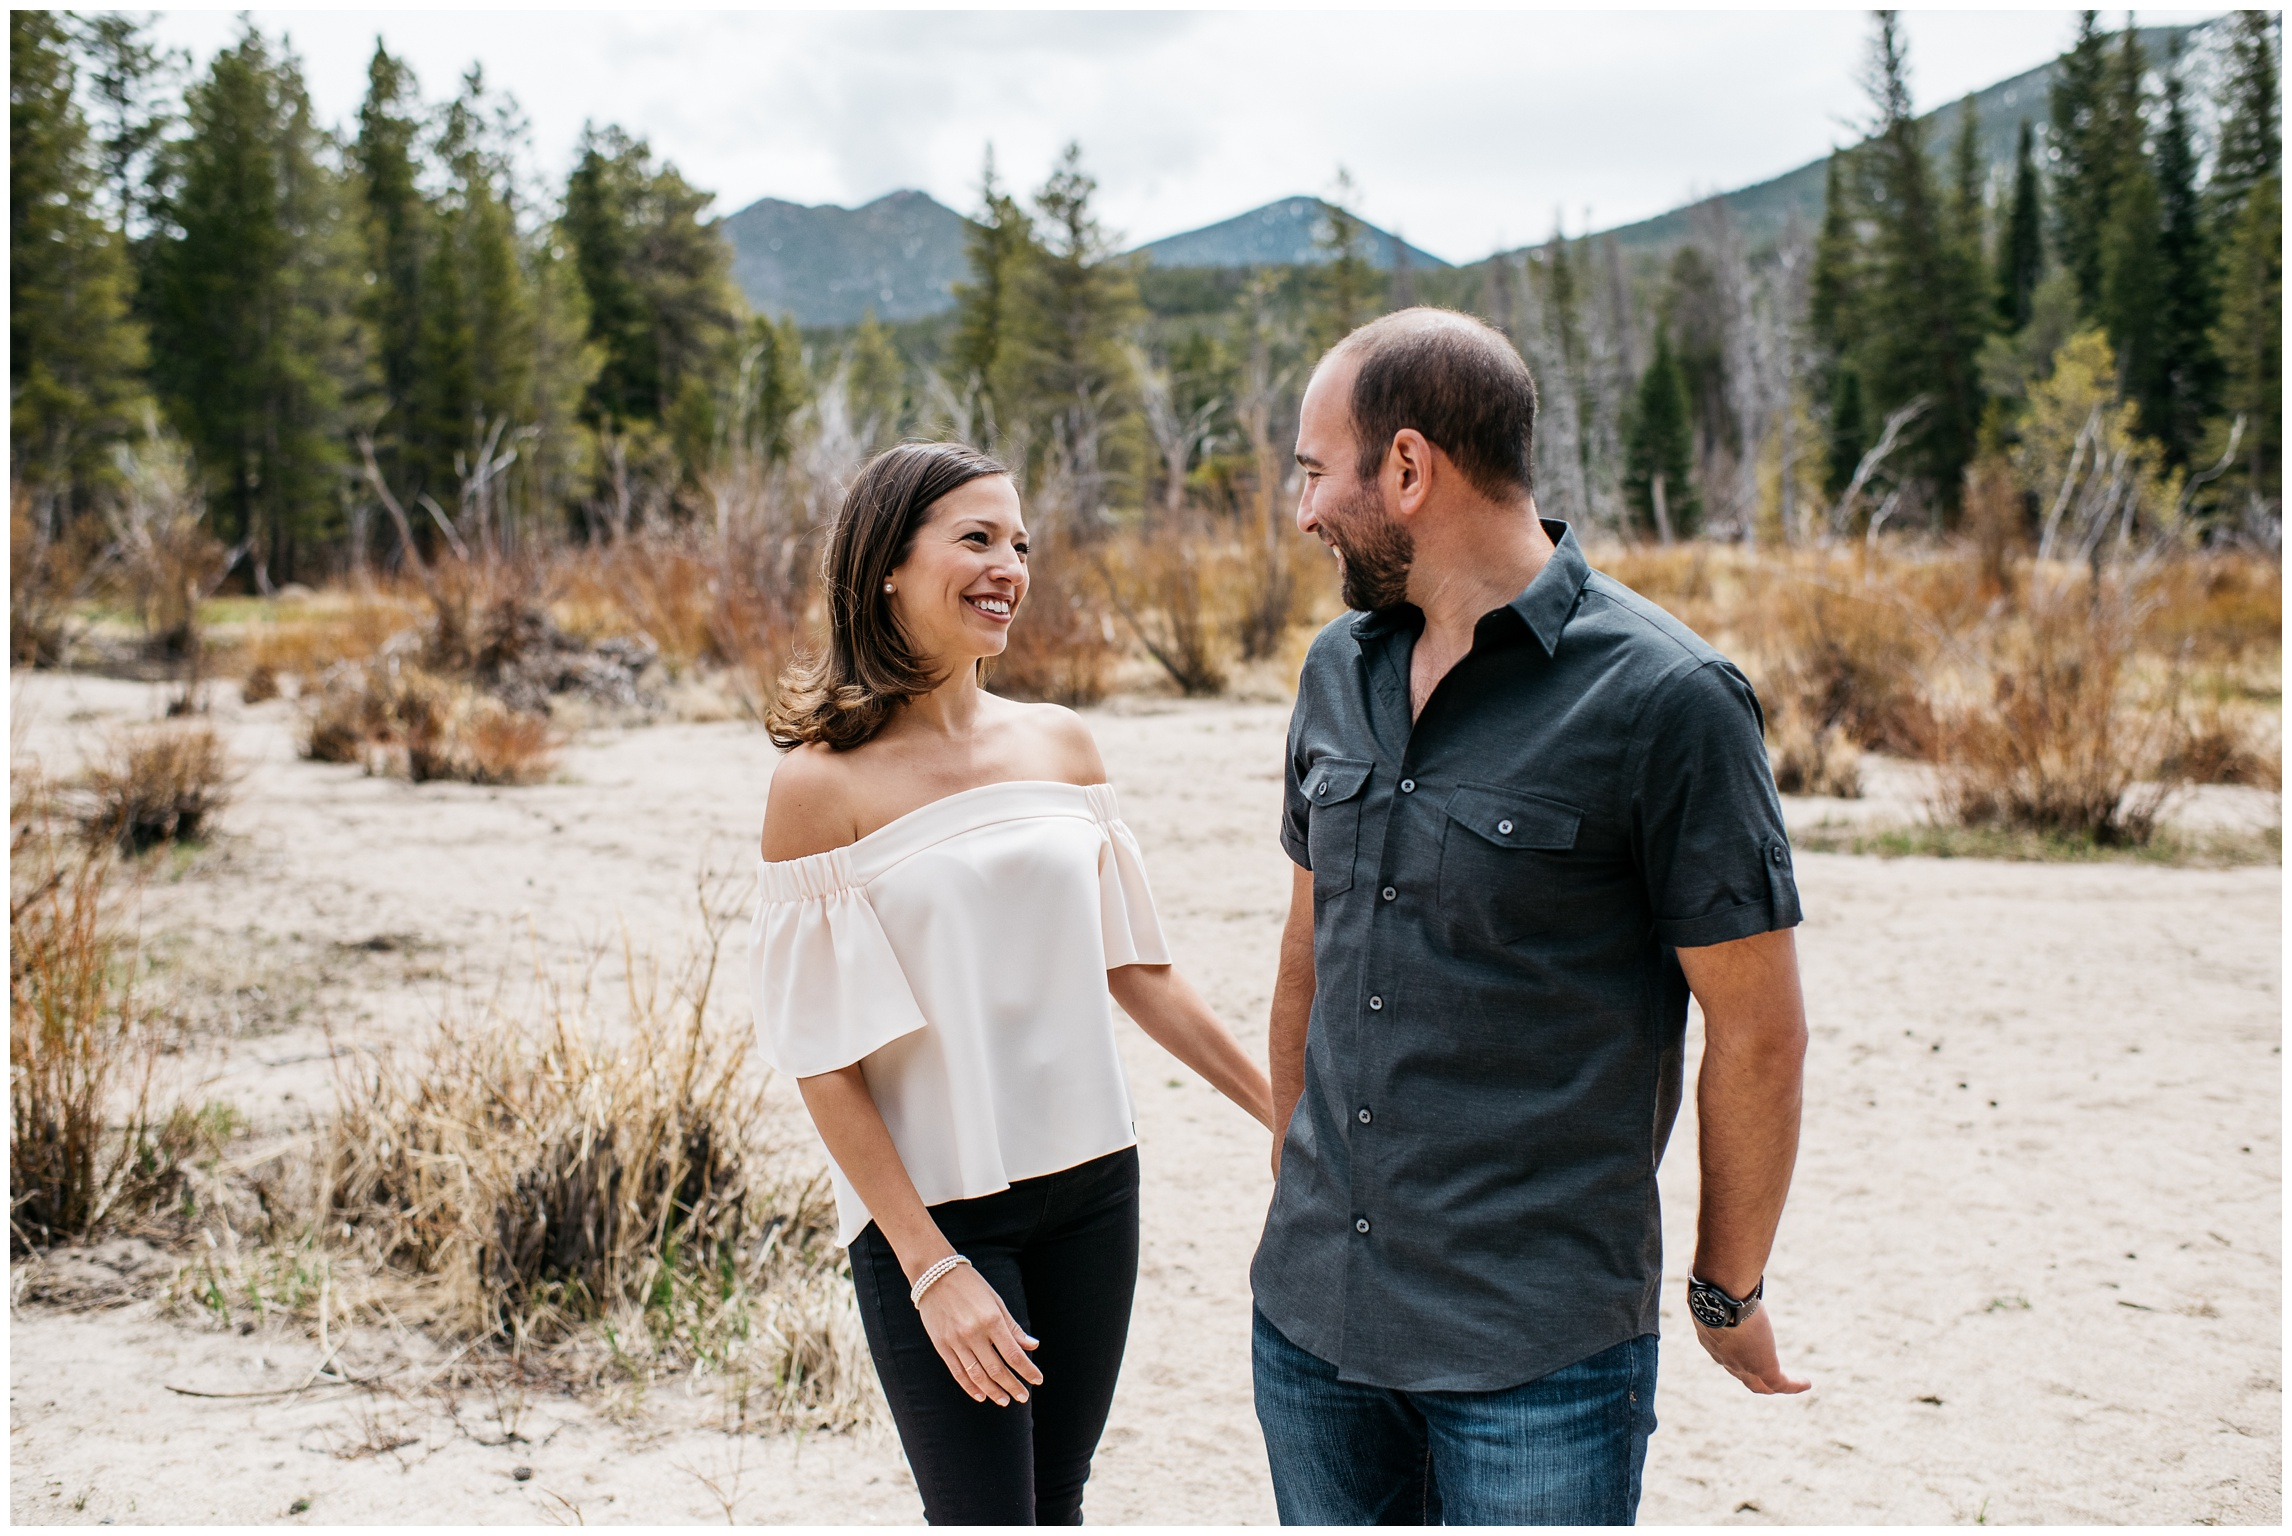 A loving couple on the beach at Sprague Lake in Rocky Mountain National Park. Engagement photography by Sonja Salzburg of Sonja K Photography.